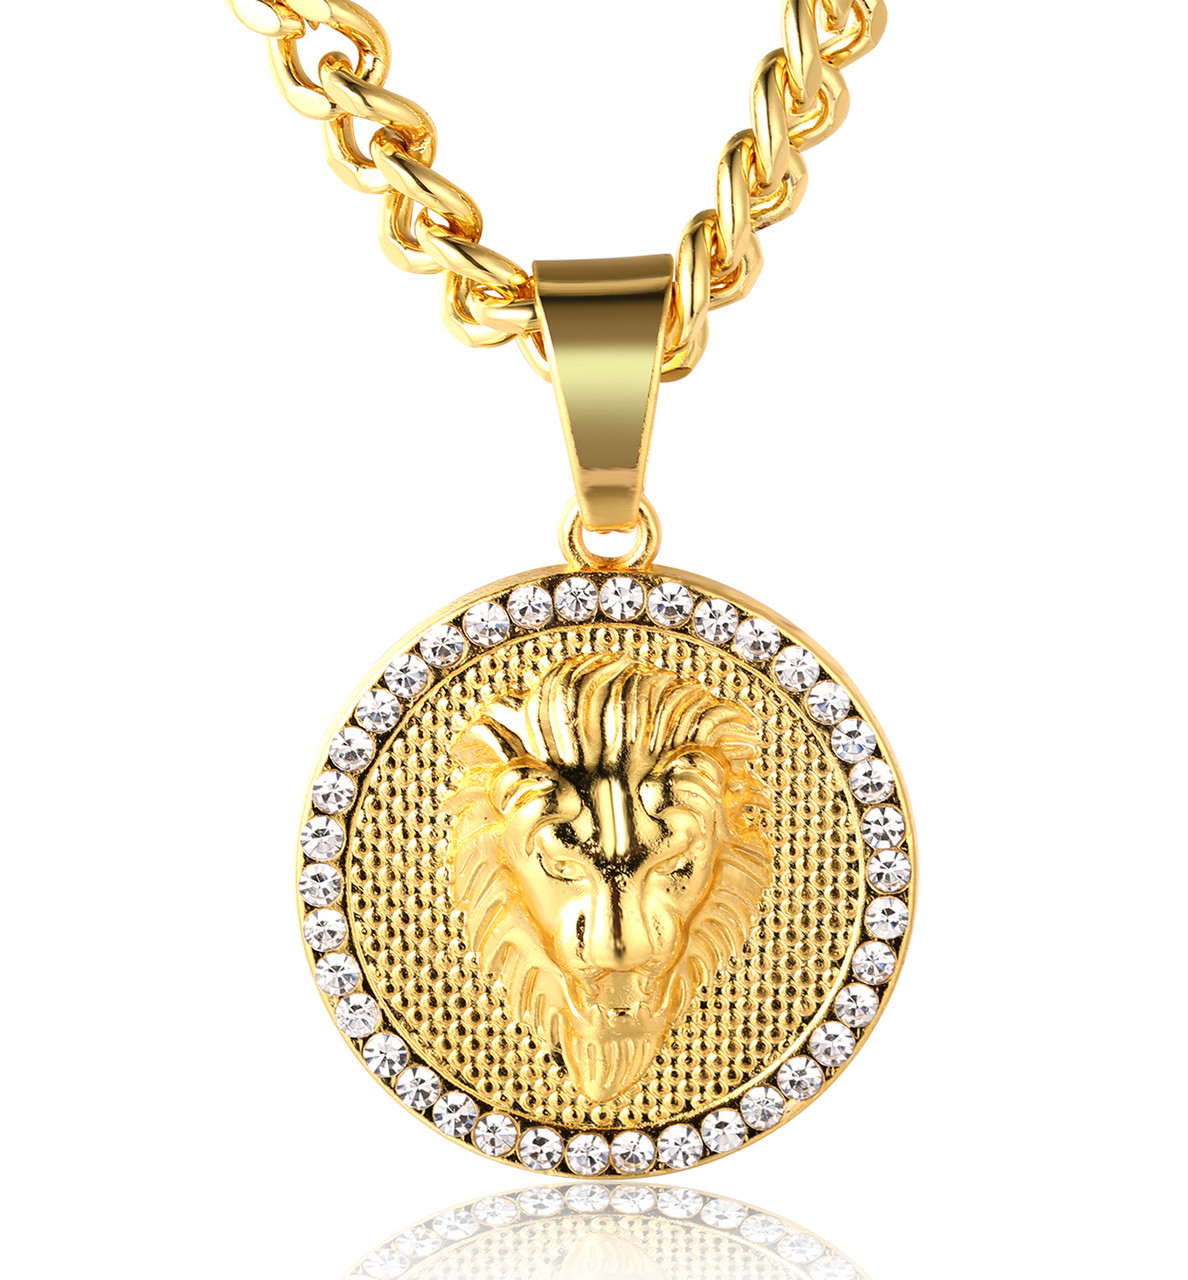 diamond store out chain full for mens iced curb gold link necklace product miami chains bling jewelry cuban men